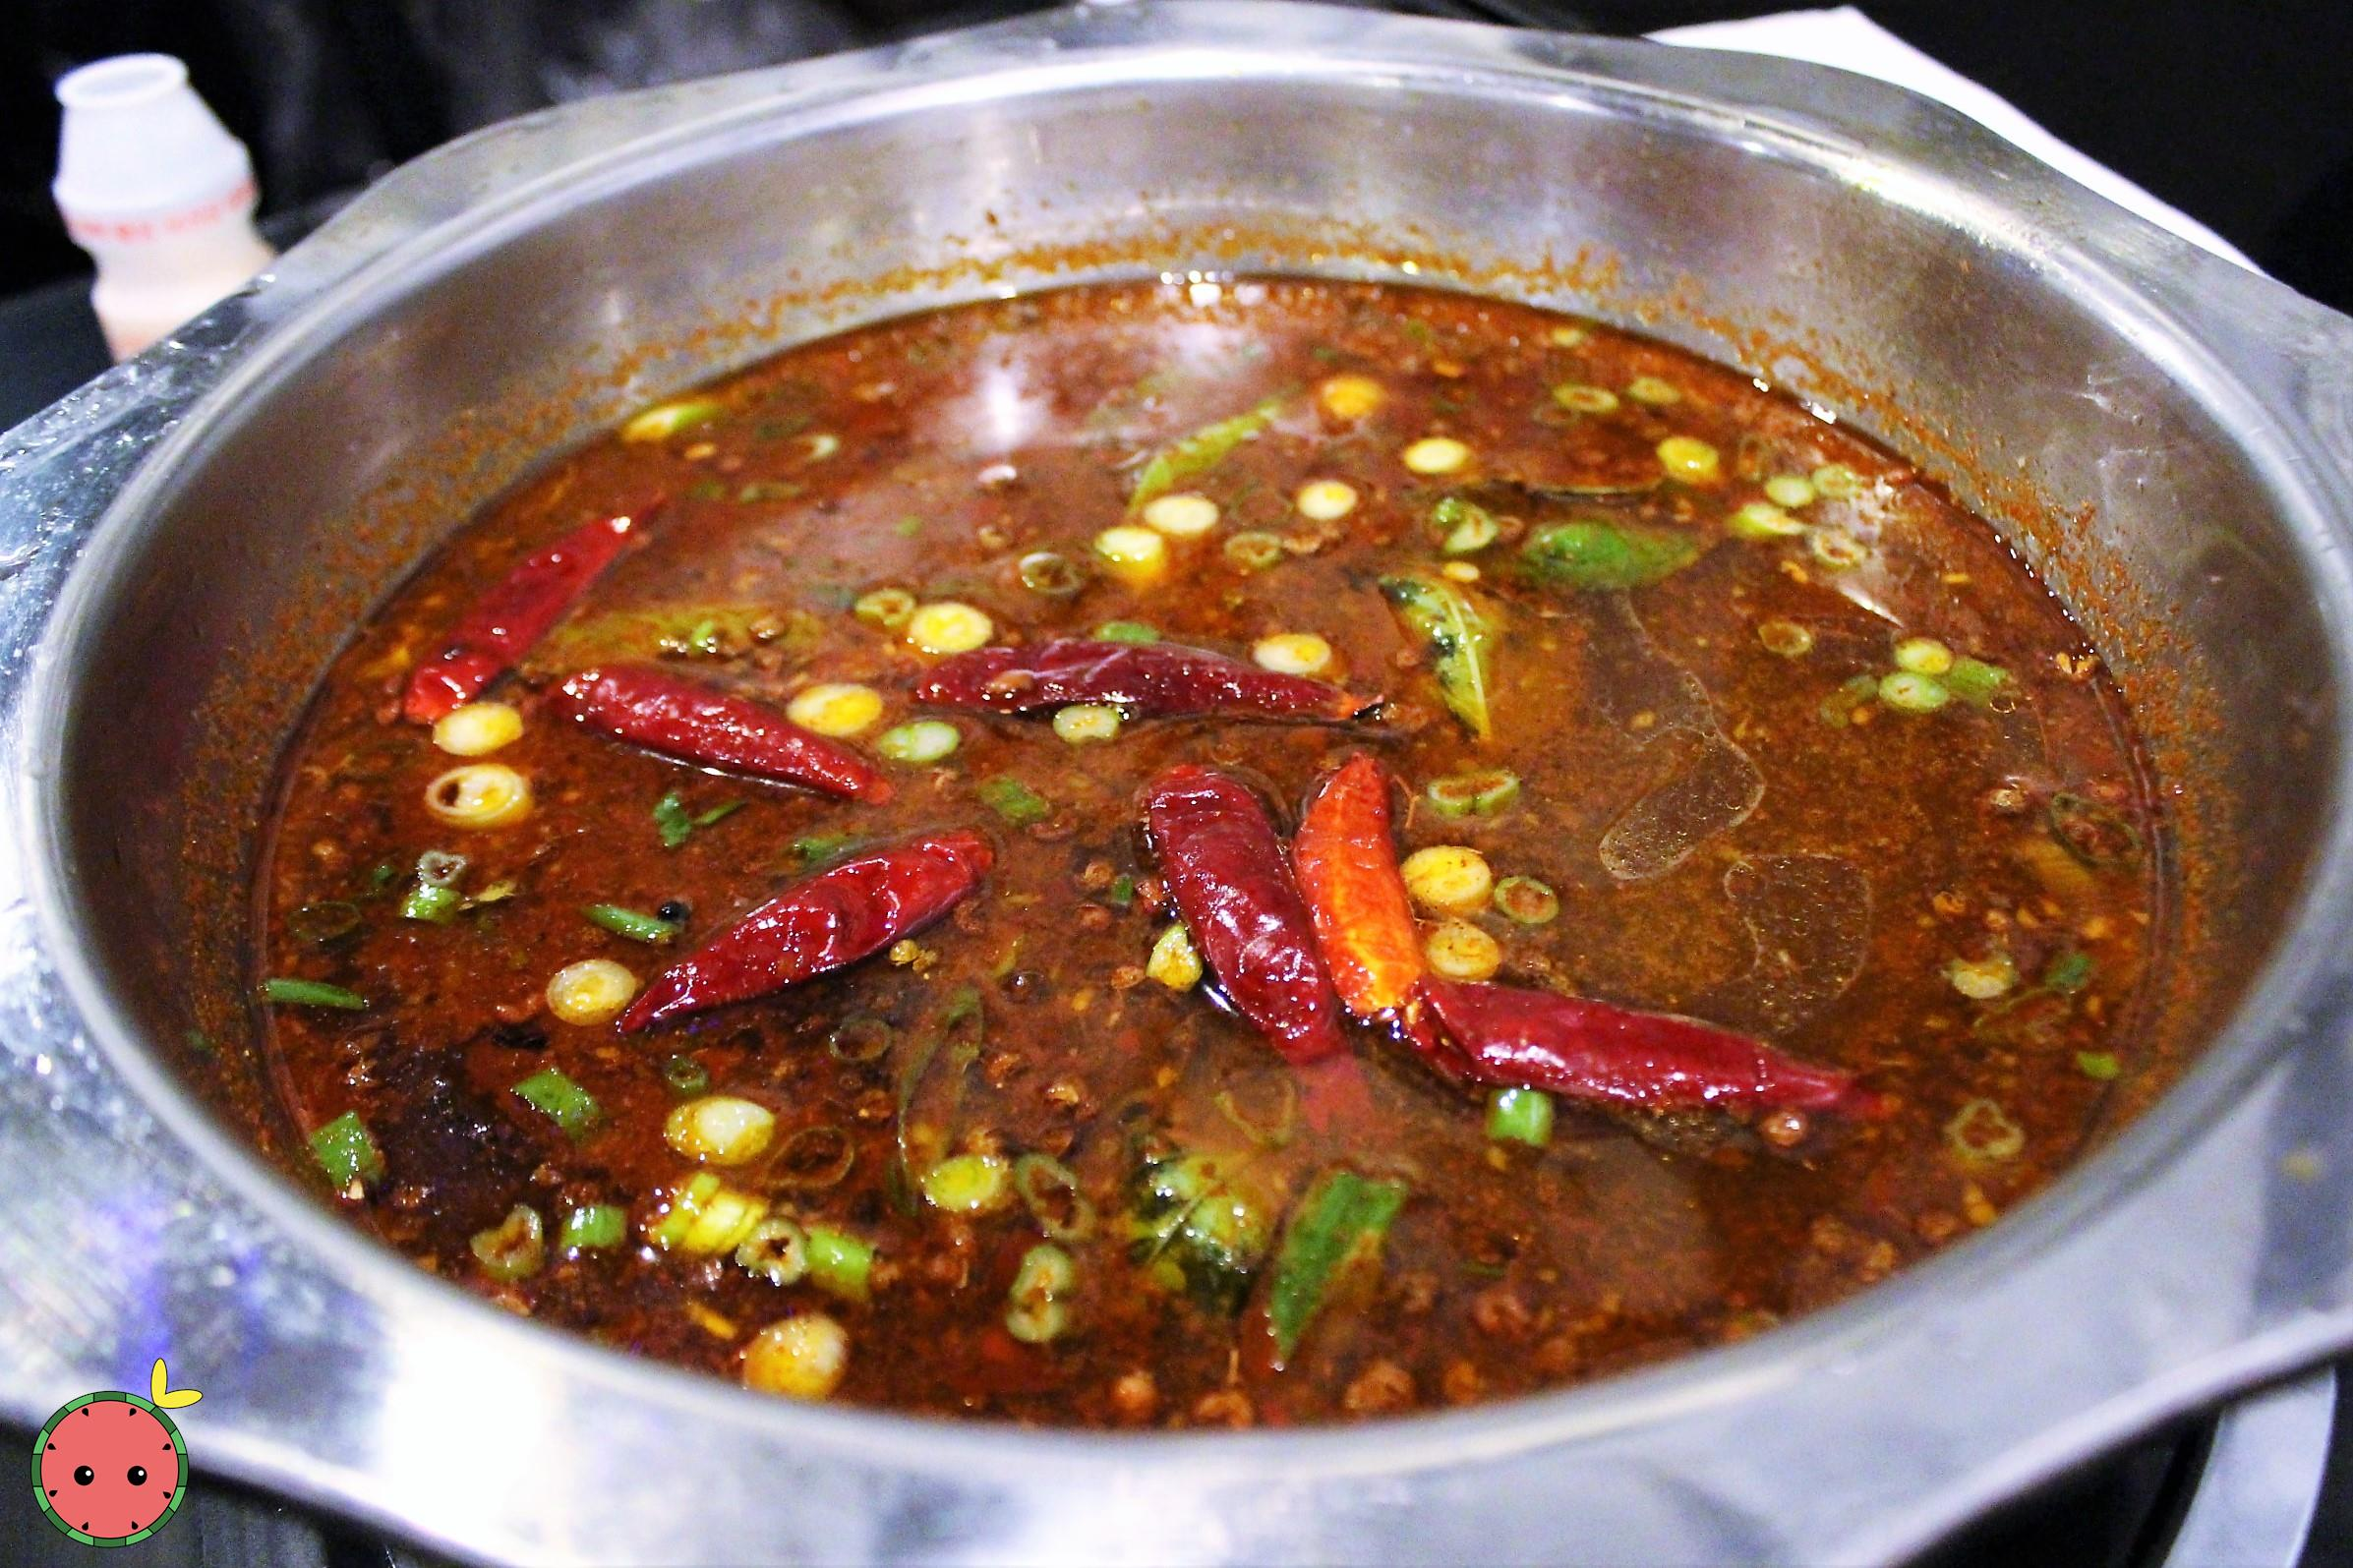 Spicy Beef Hot Pot